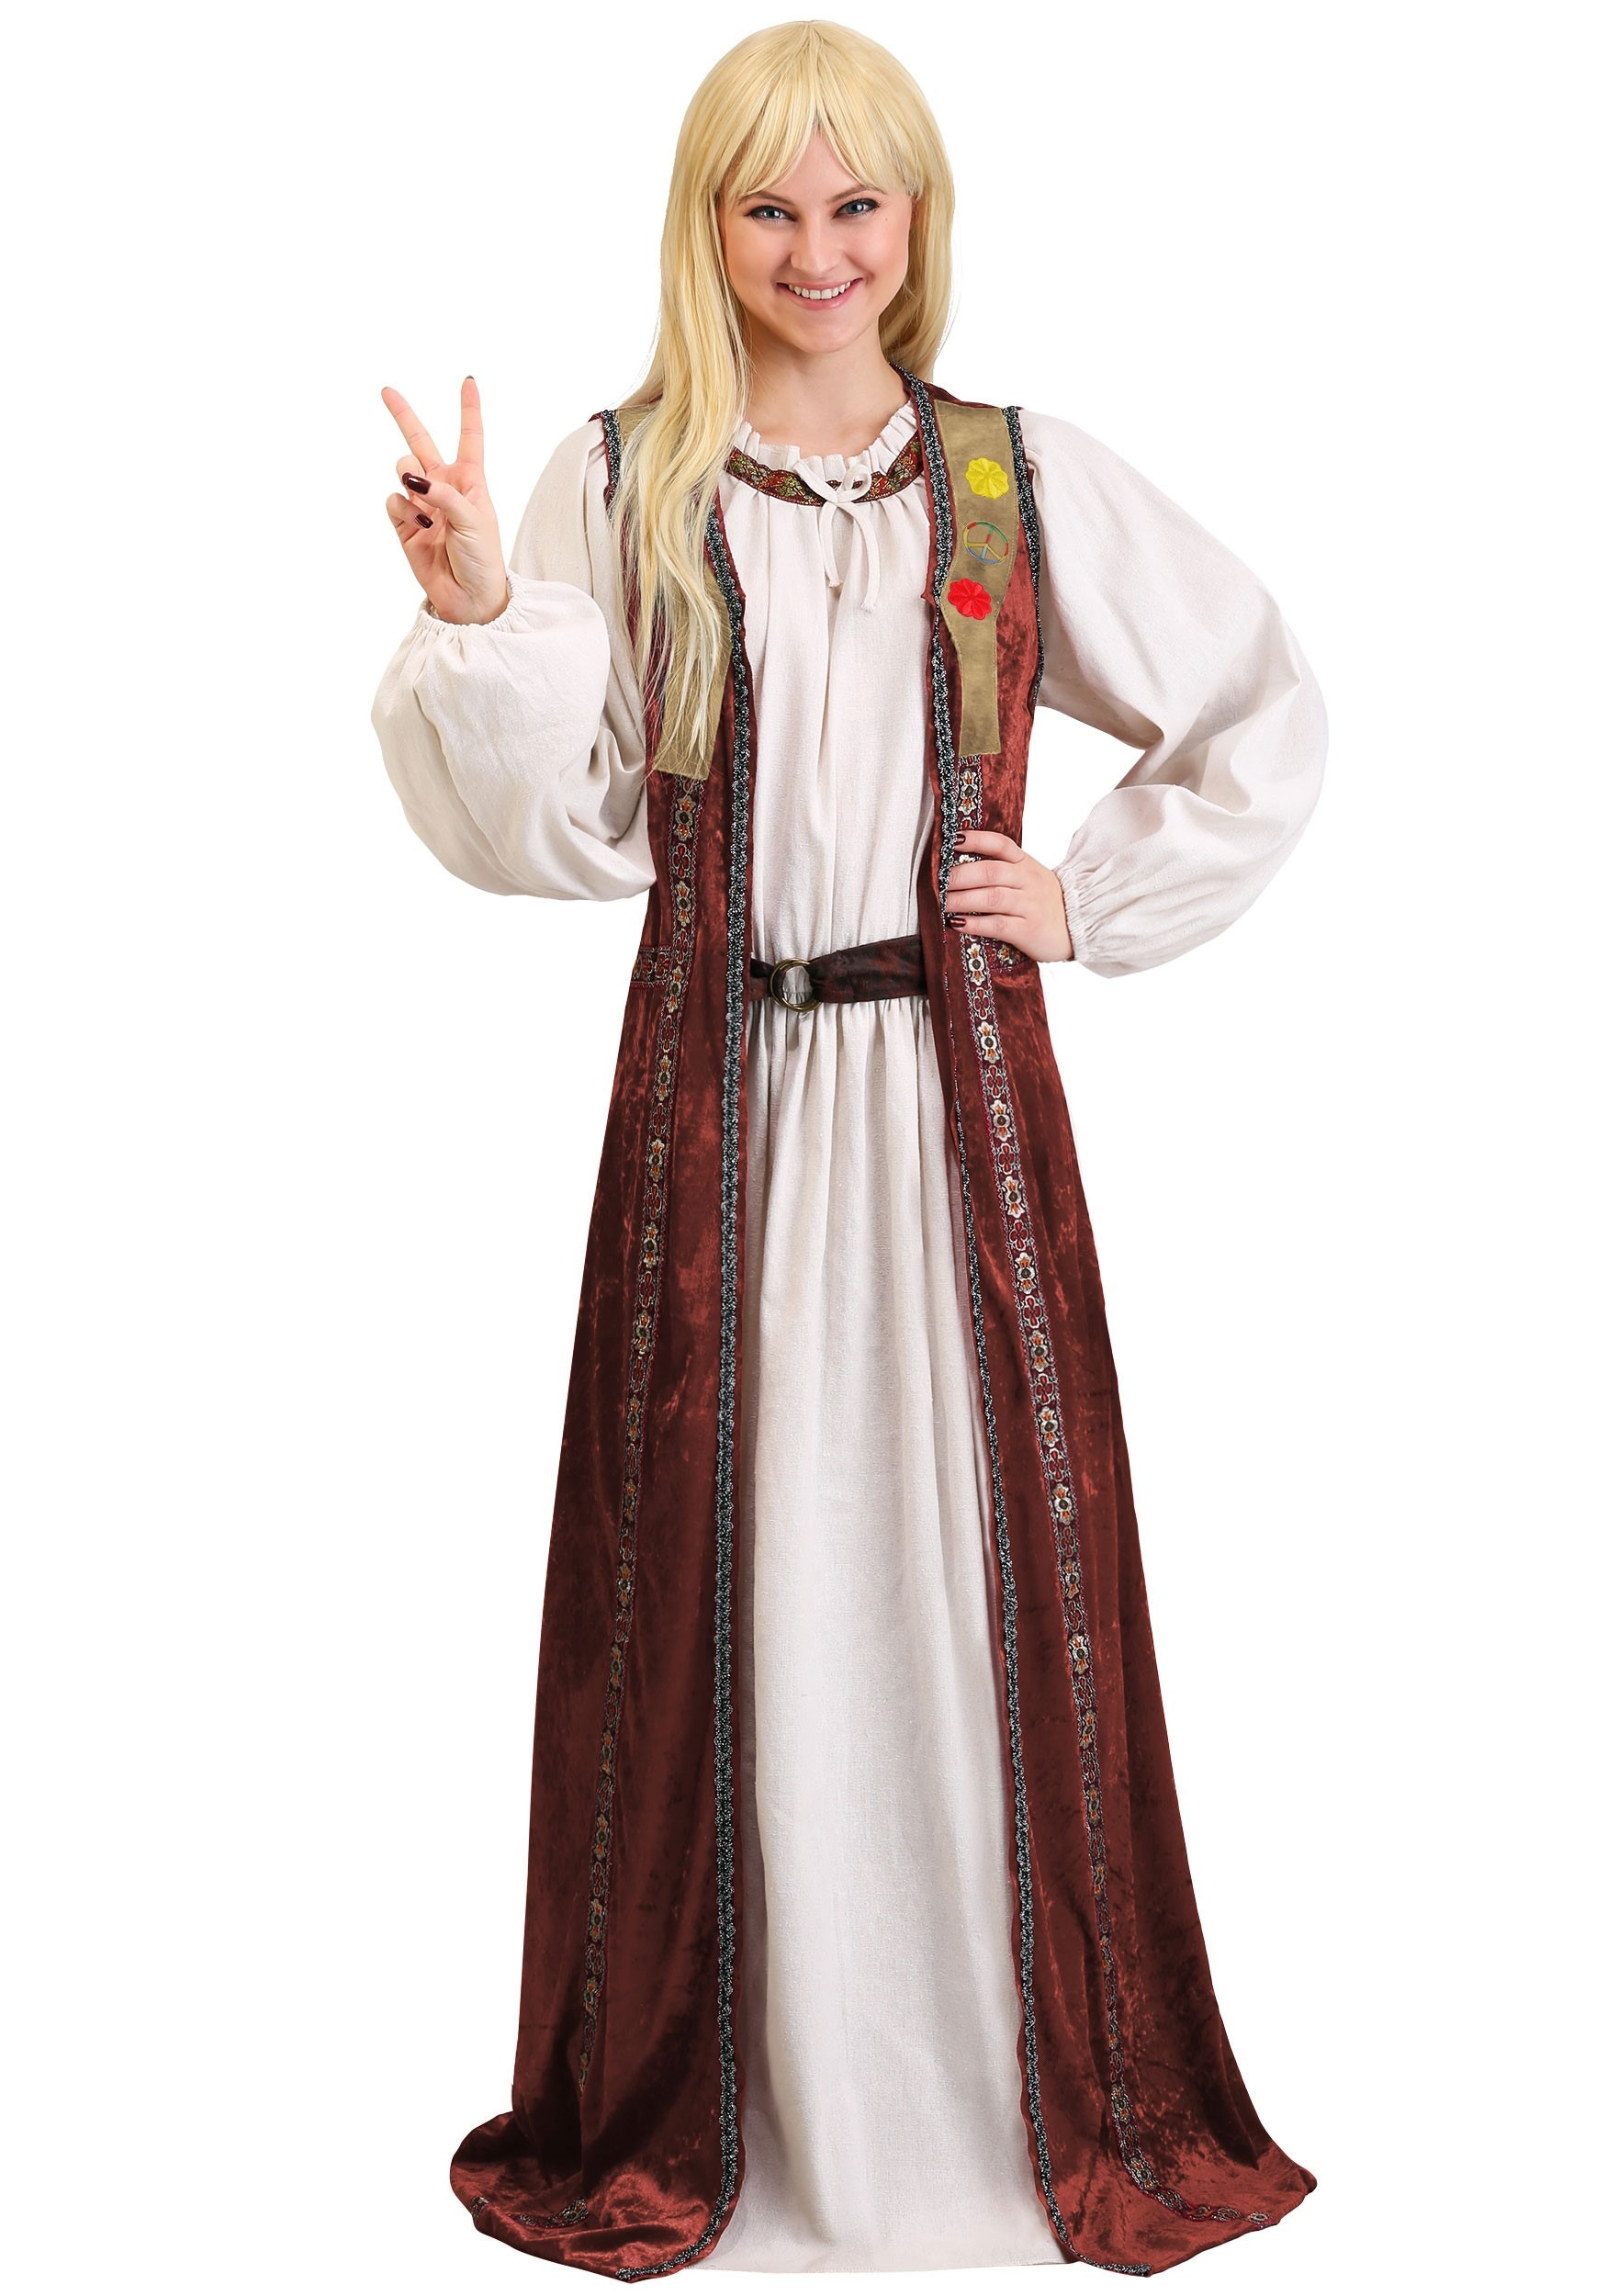 Forrest Gump Jenny Curran Adult Costume for Women